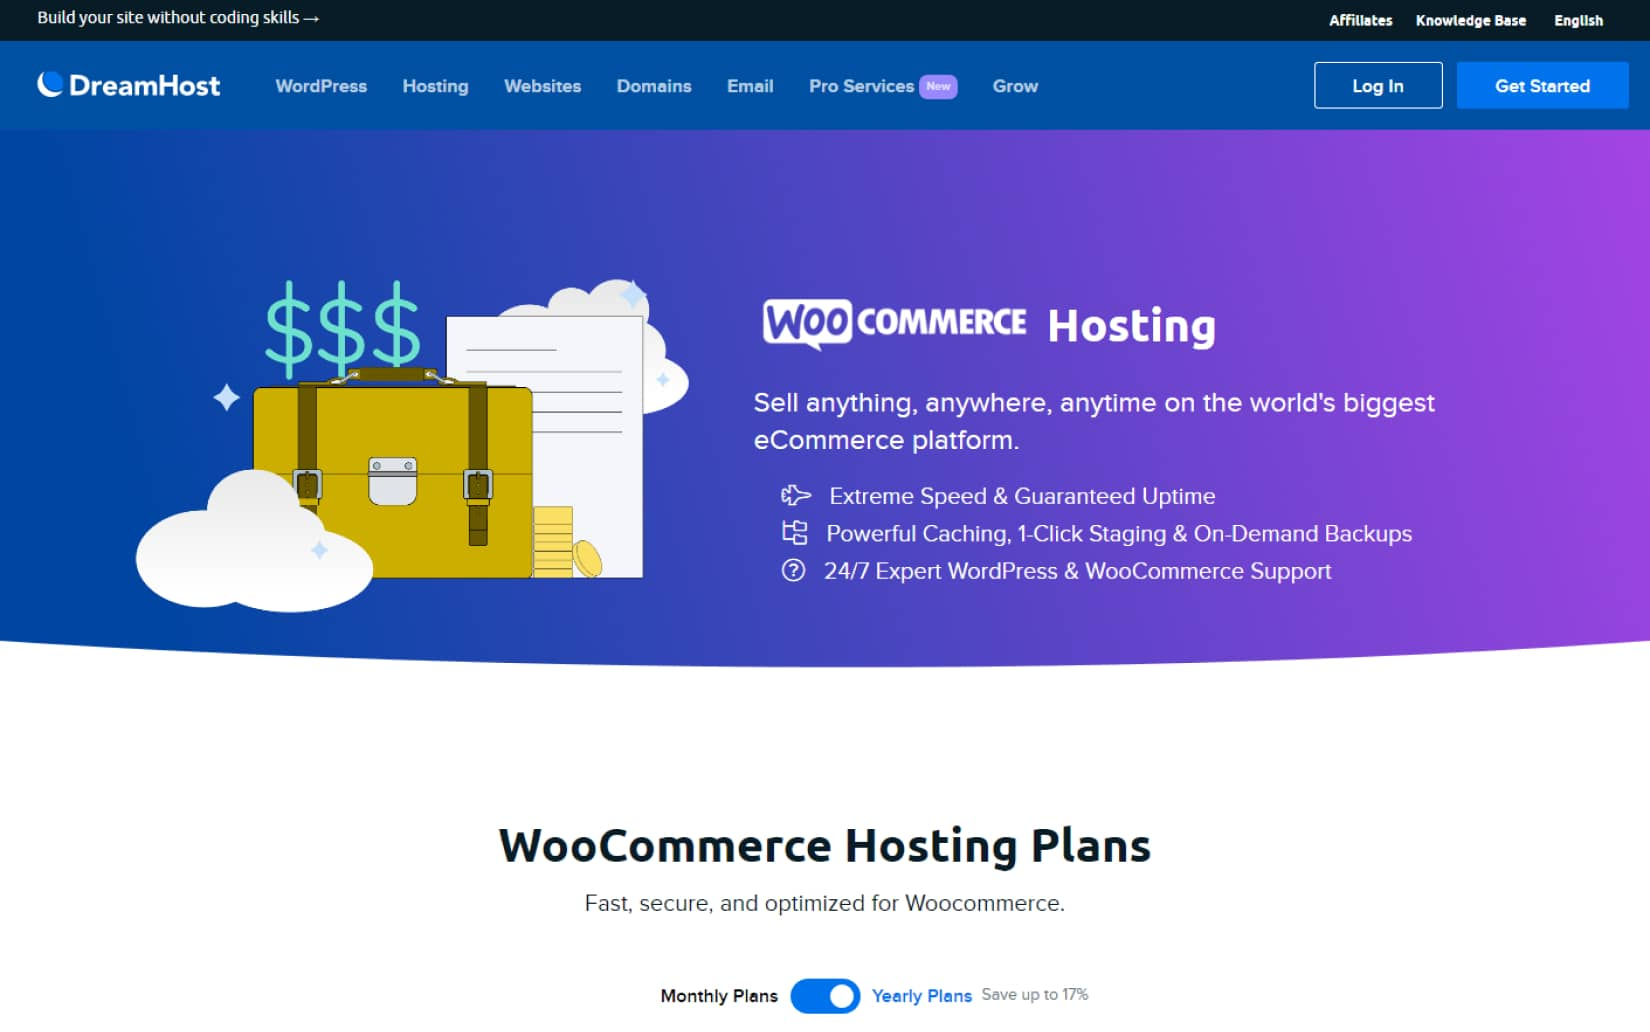 10 Best WooCommerce Hosting Compared 2020 DreamHost